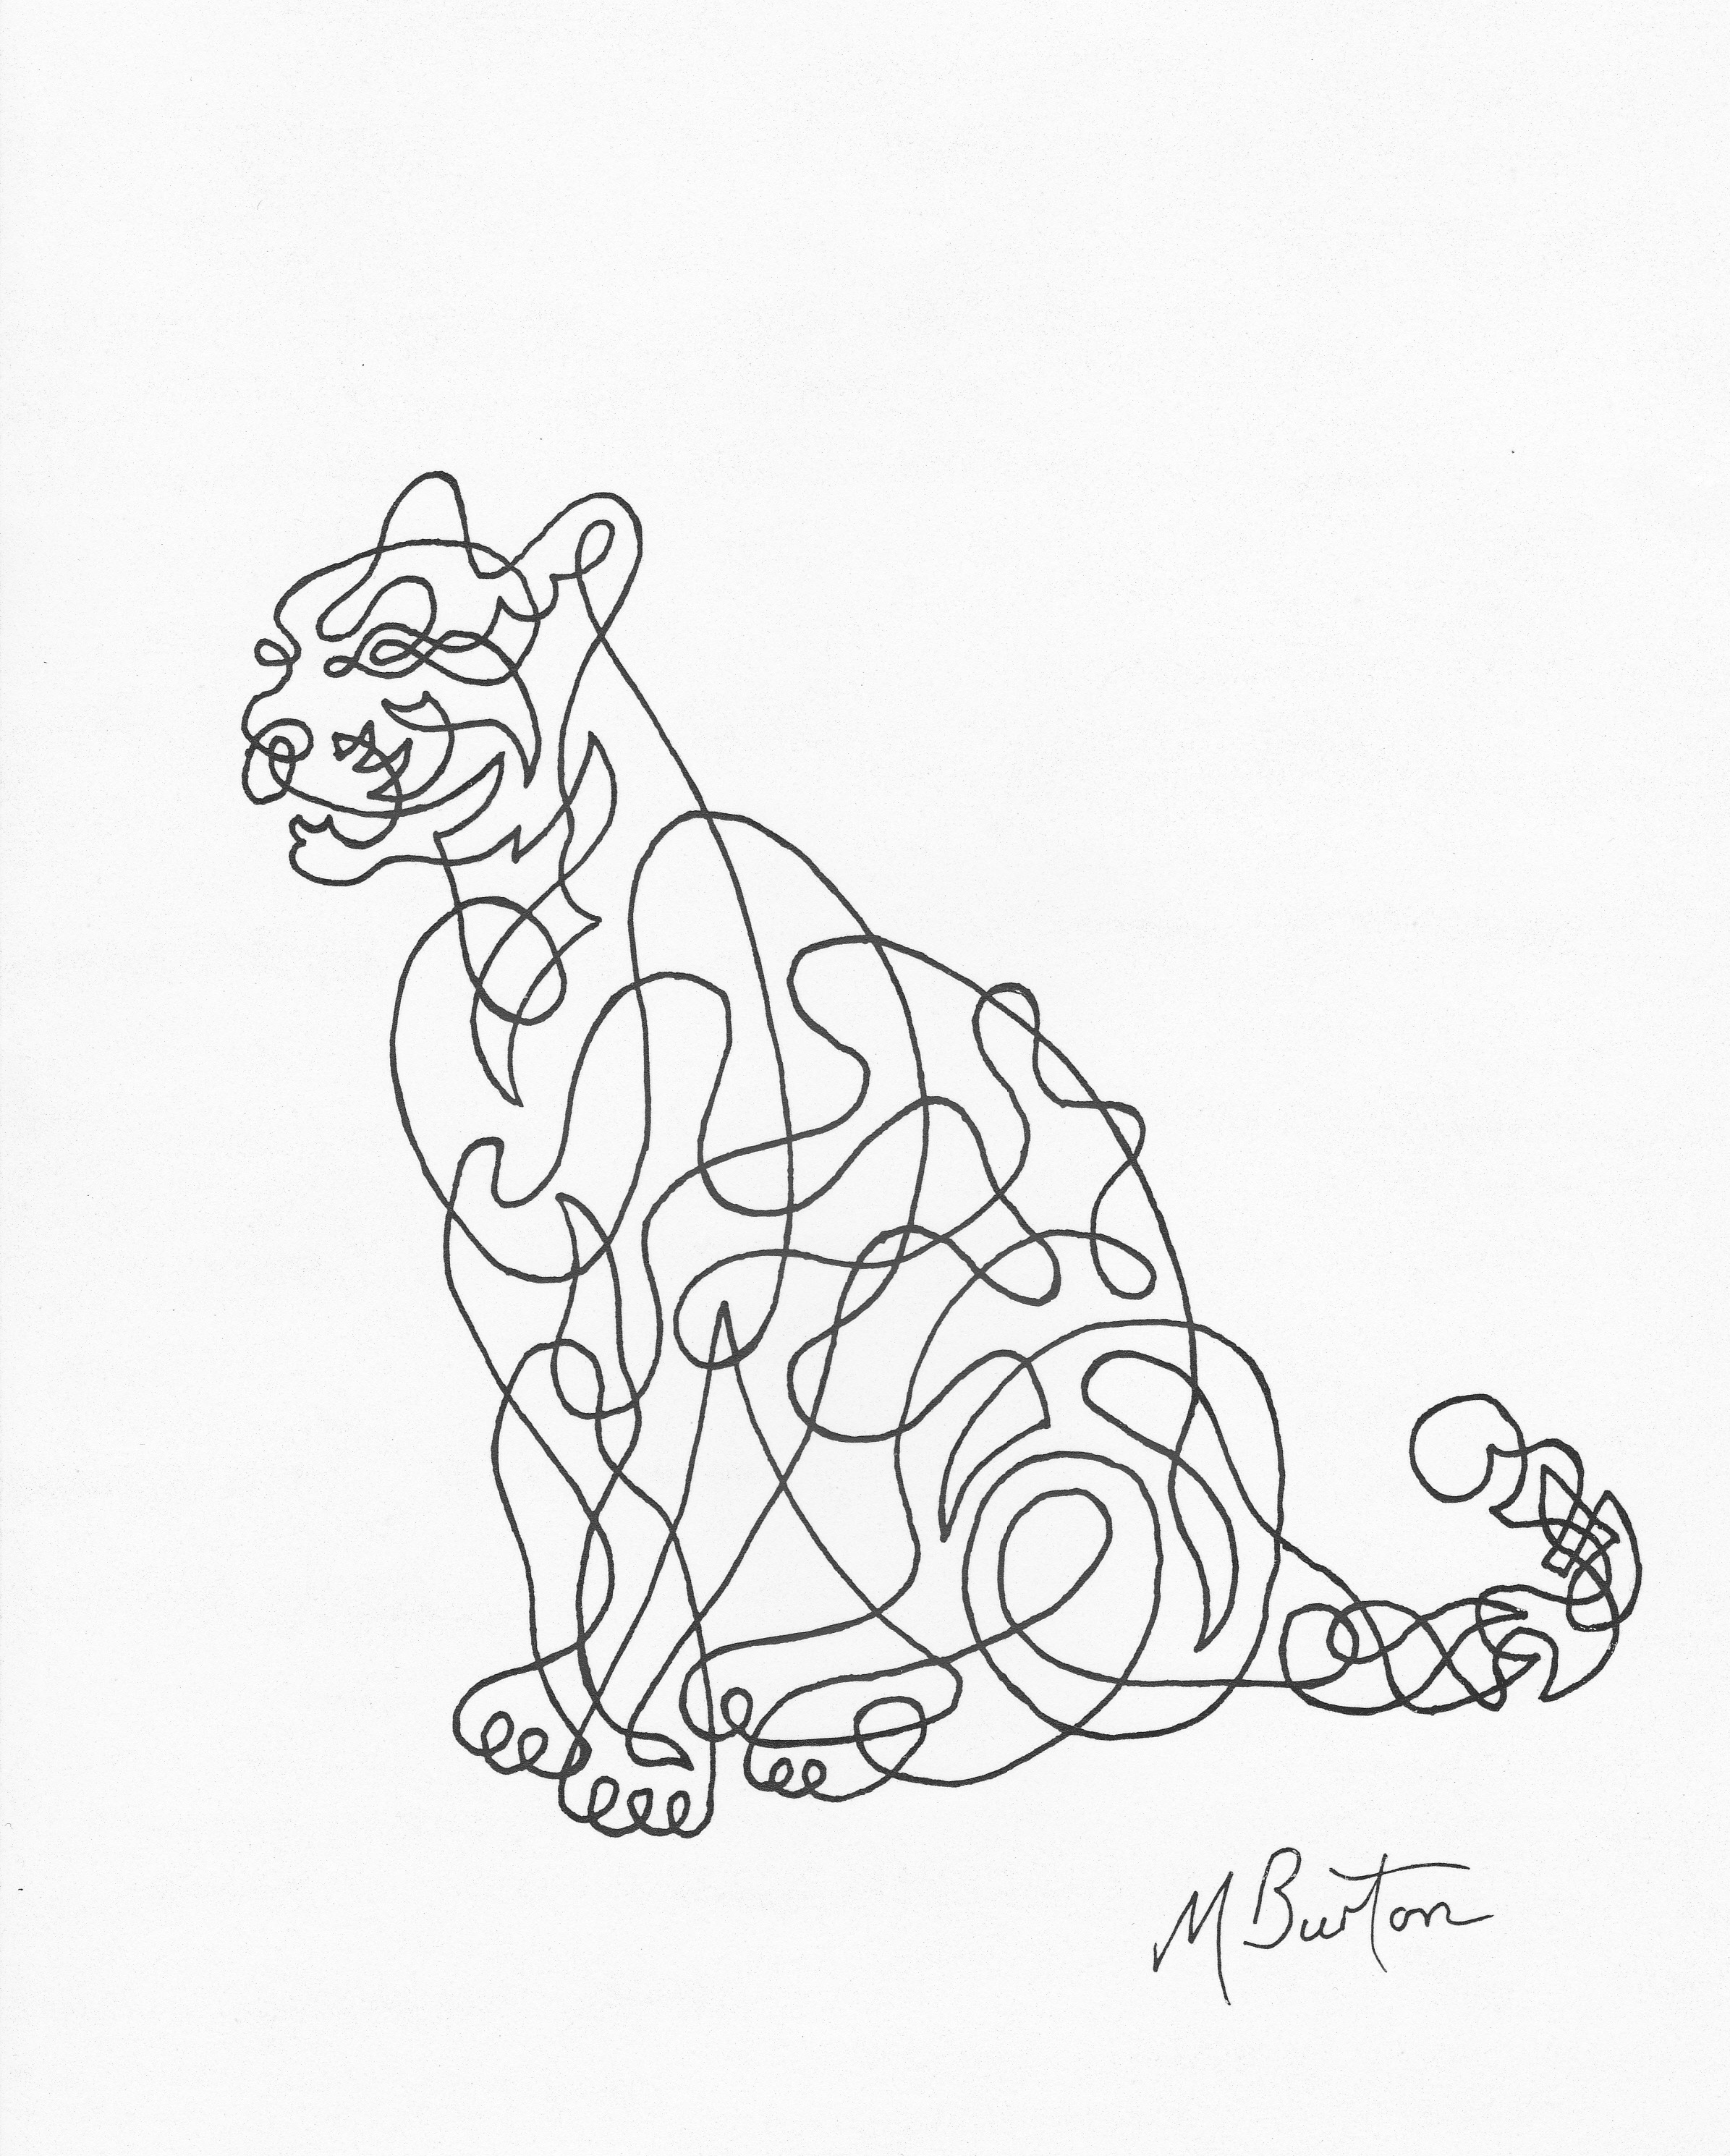 Line Drawing Famous Artists : April mick burton